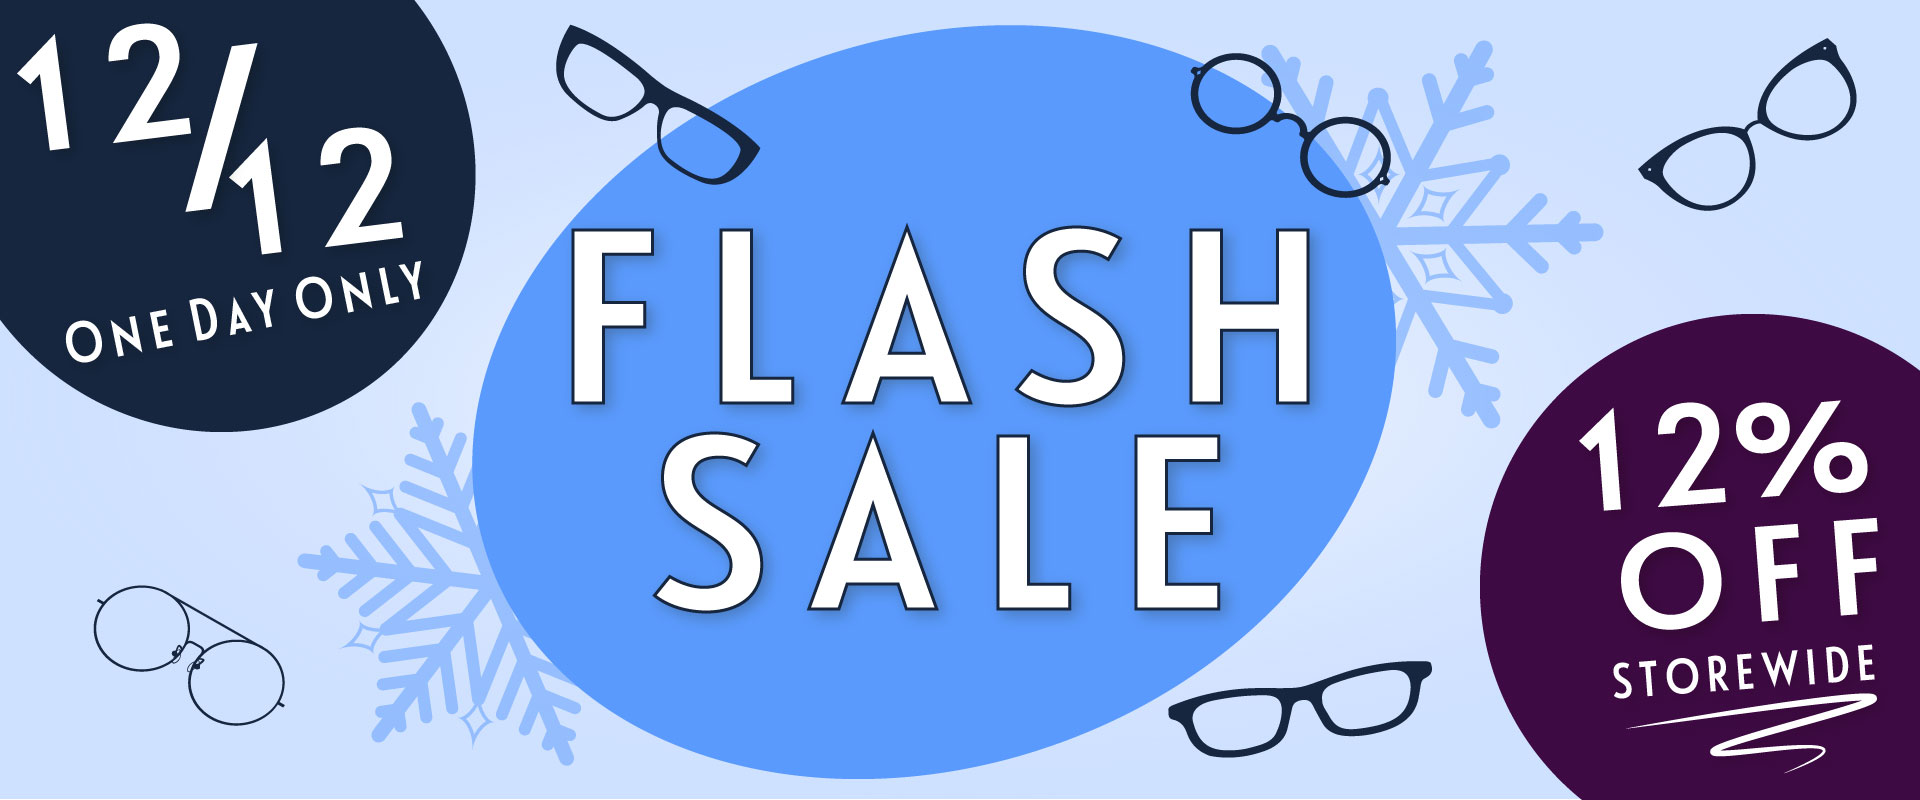 Enjoy 12% off the best prices on the Internet for prescription glasses, one day only on 12/12!